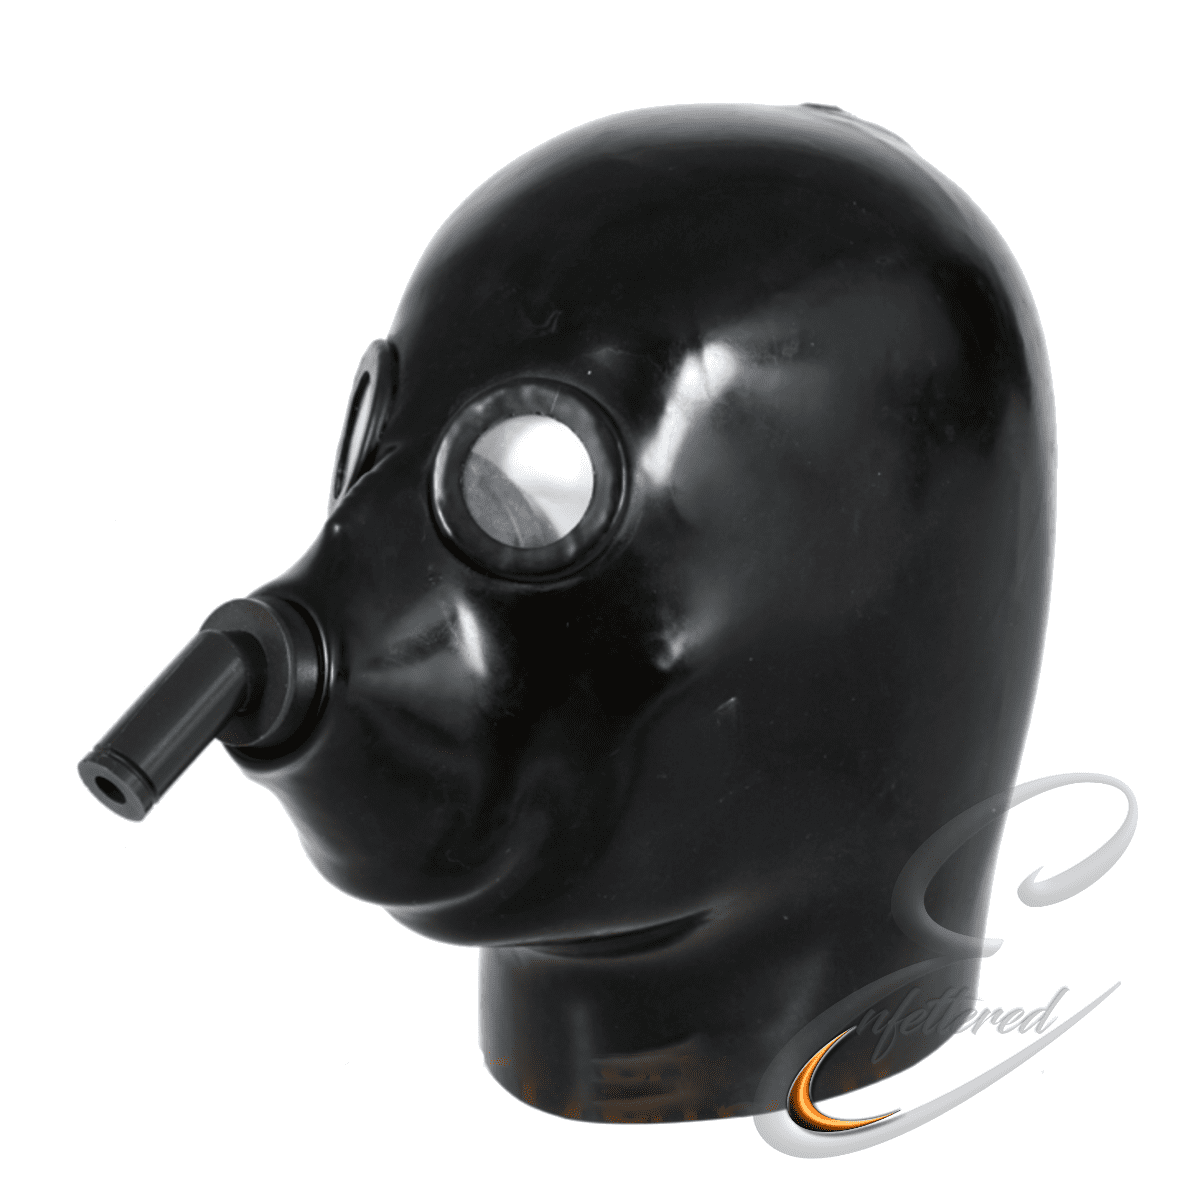 Enfettered Heavy Rubber Anaesthesia Mask